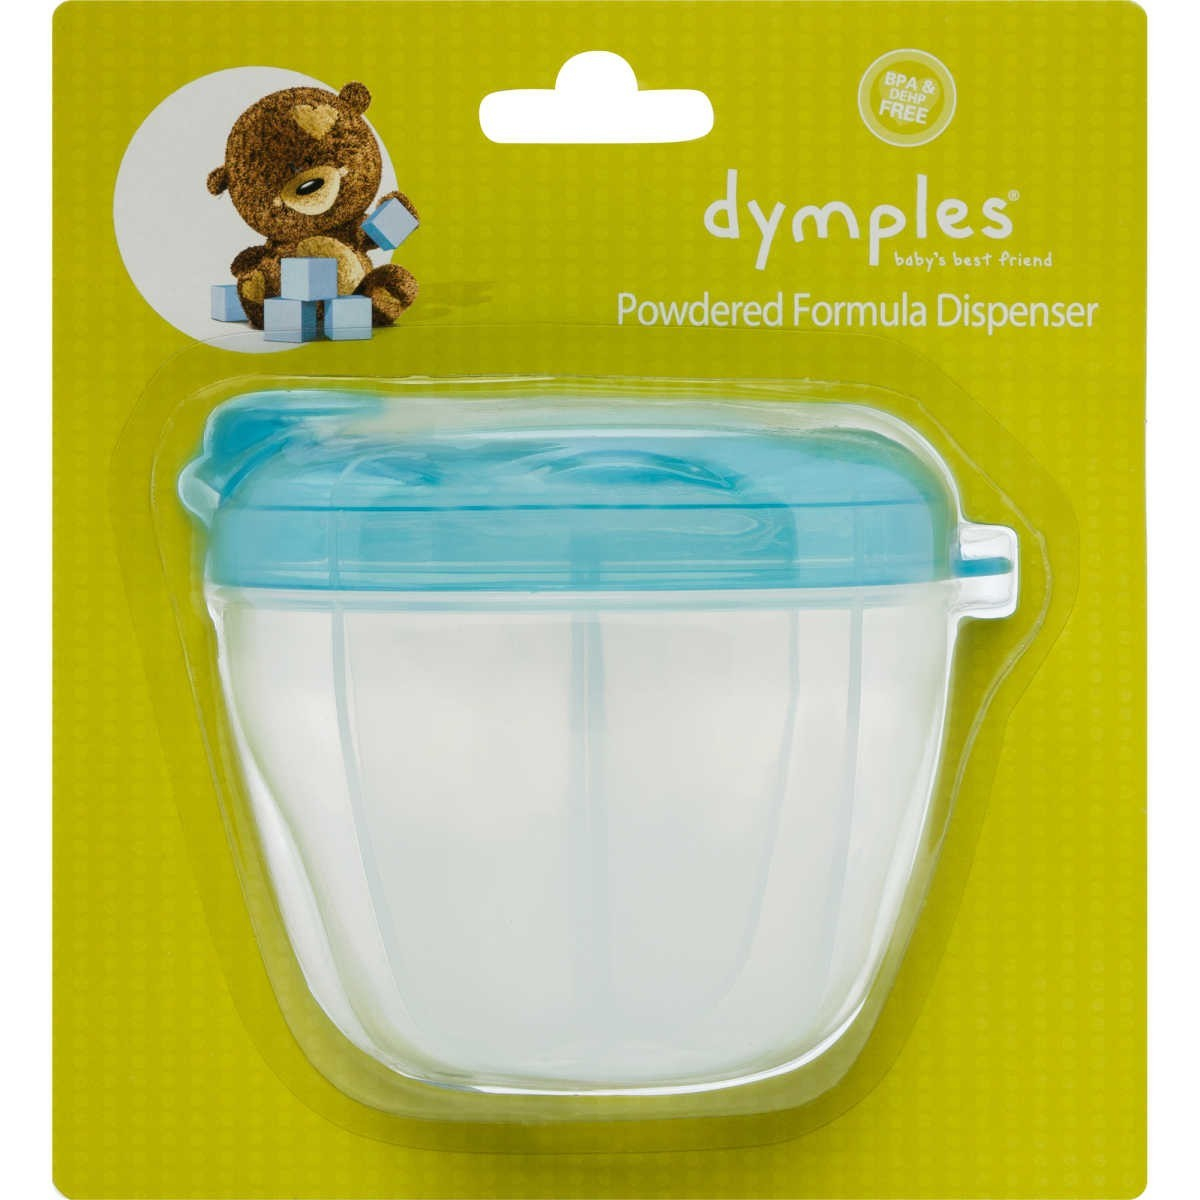 Dymples Powdered Formula Dispenser in measurements 1200 X 1200